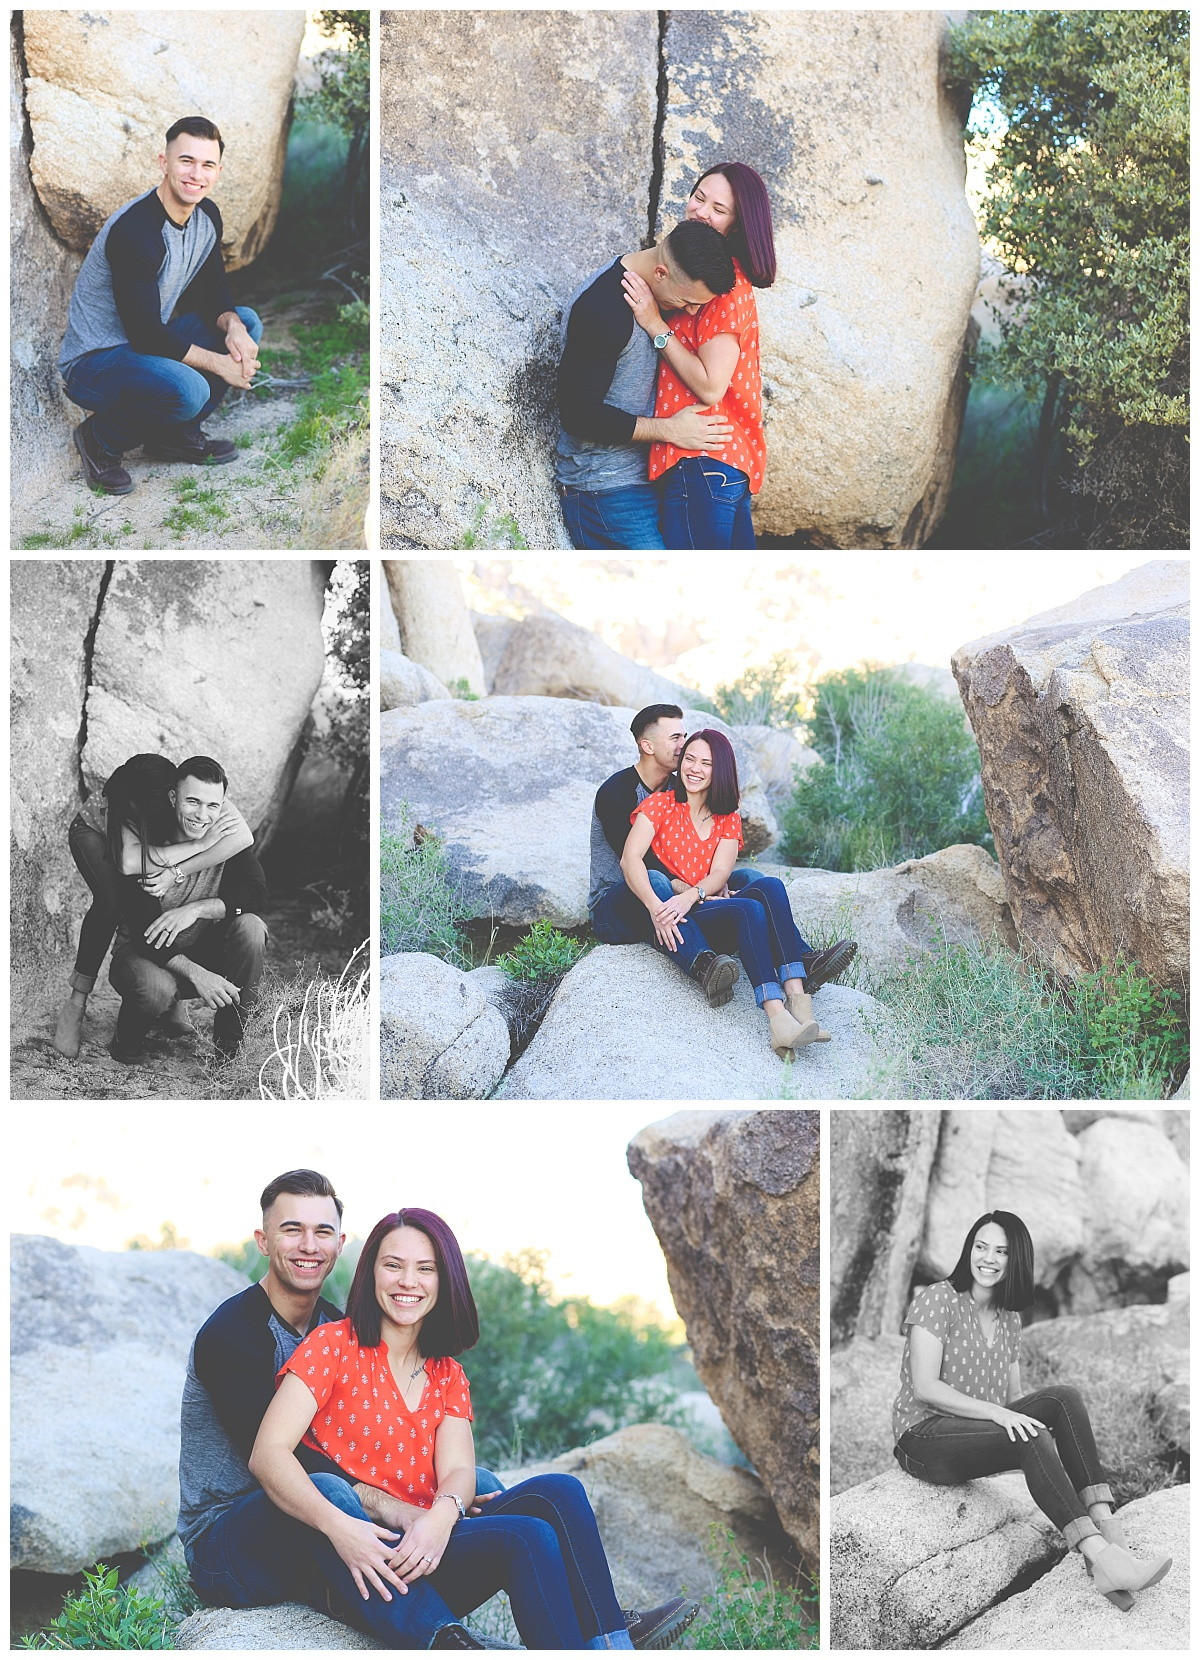 Twentynine Palms Couples Photography - Twentynine Palms Couples Photographer Serb